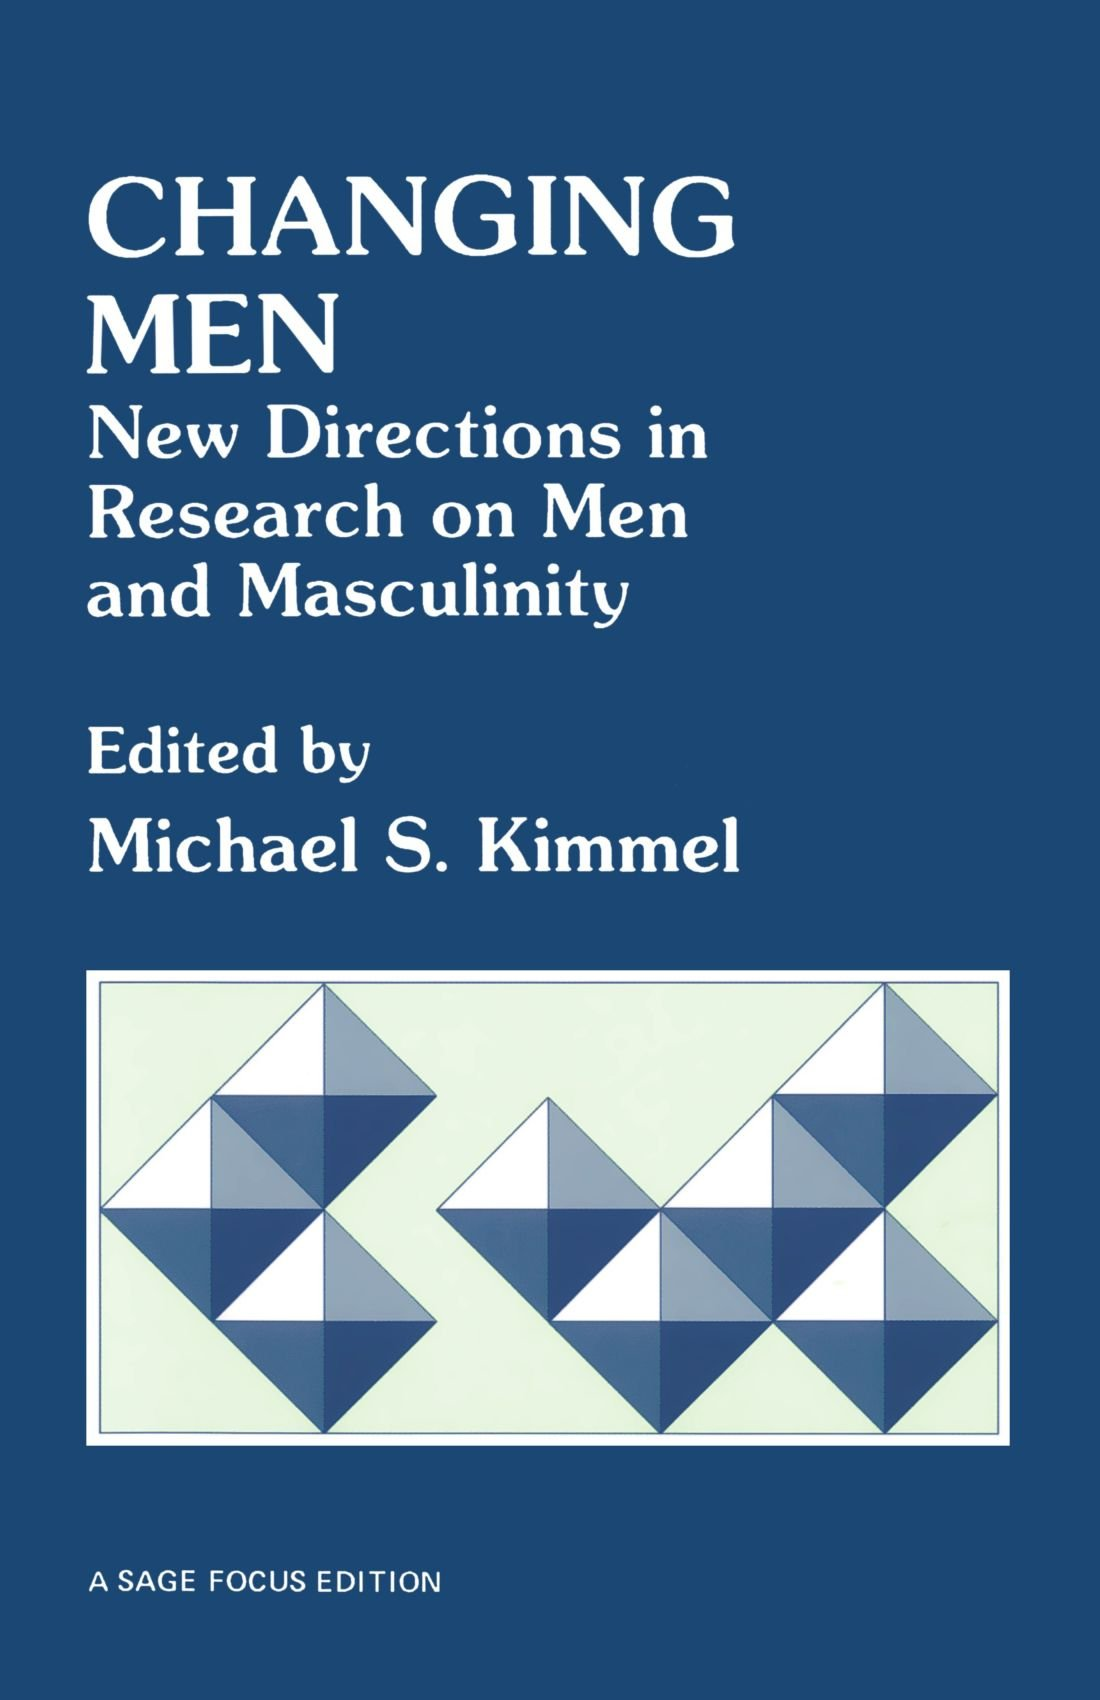 Changing Men: New Directions in Research on Men and Masculinity (SAGE Focus Editions)